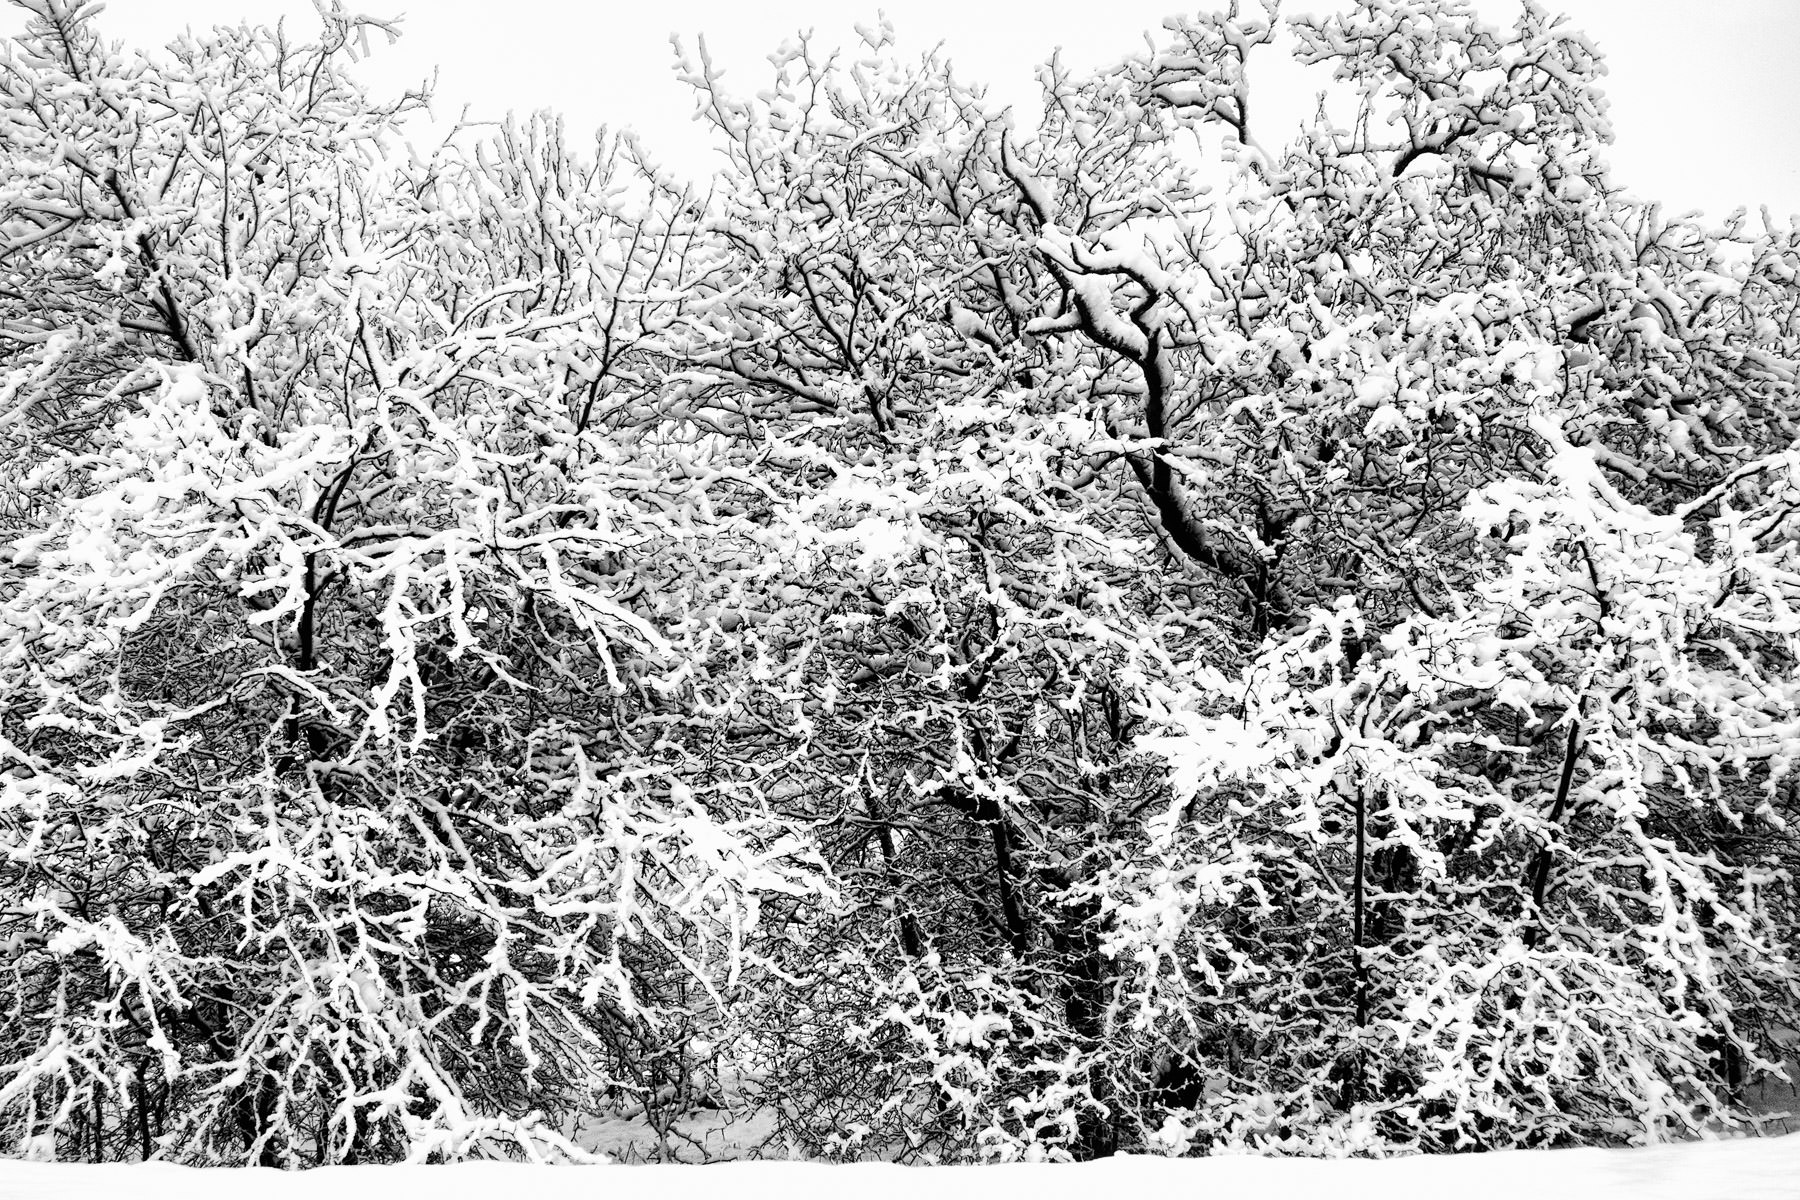 Snow covers the branches of trees in Irving, Texas.